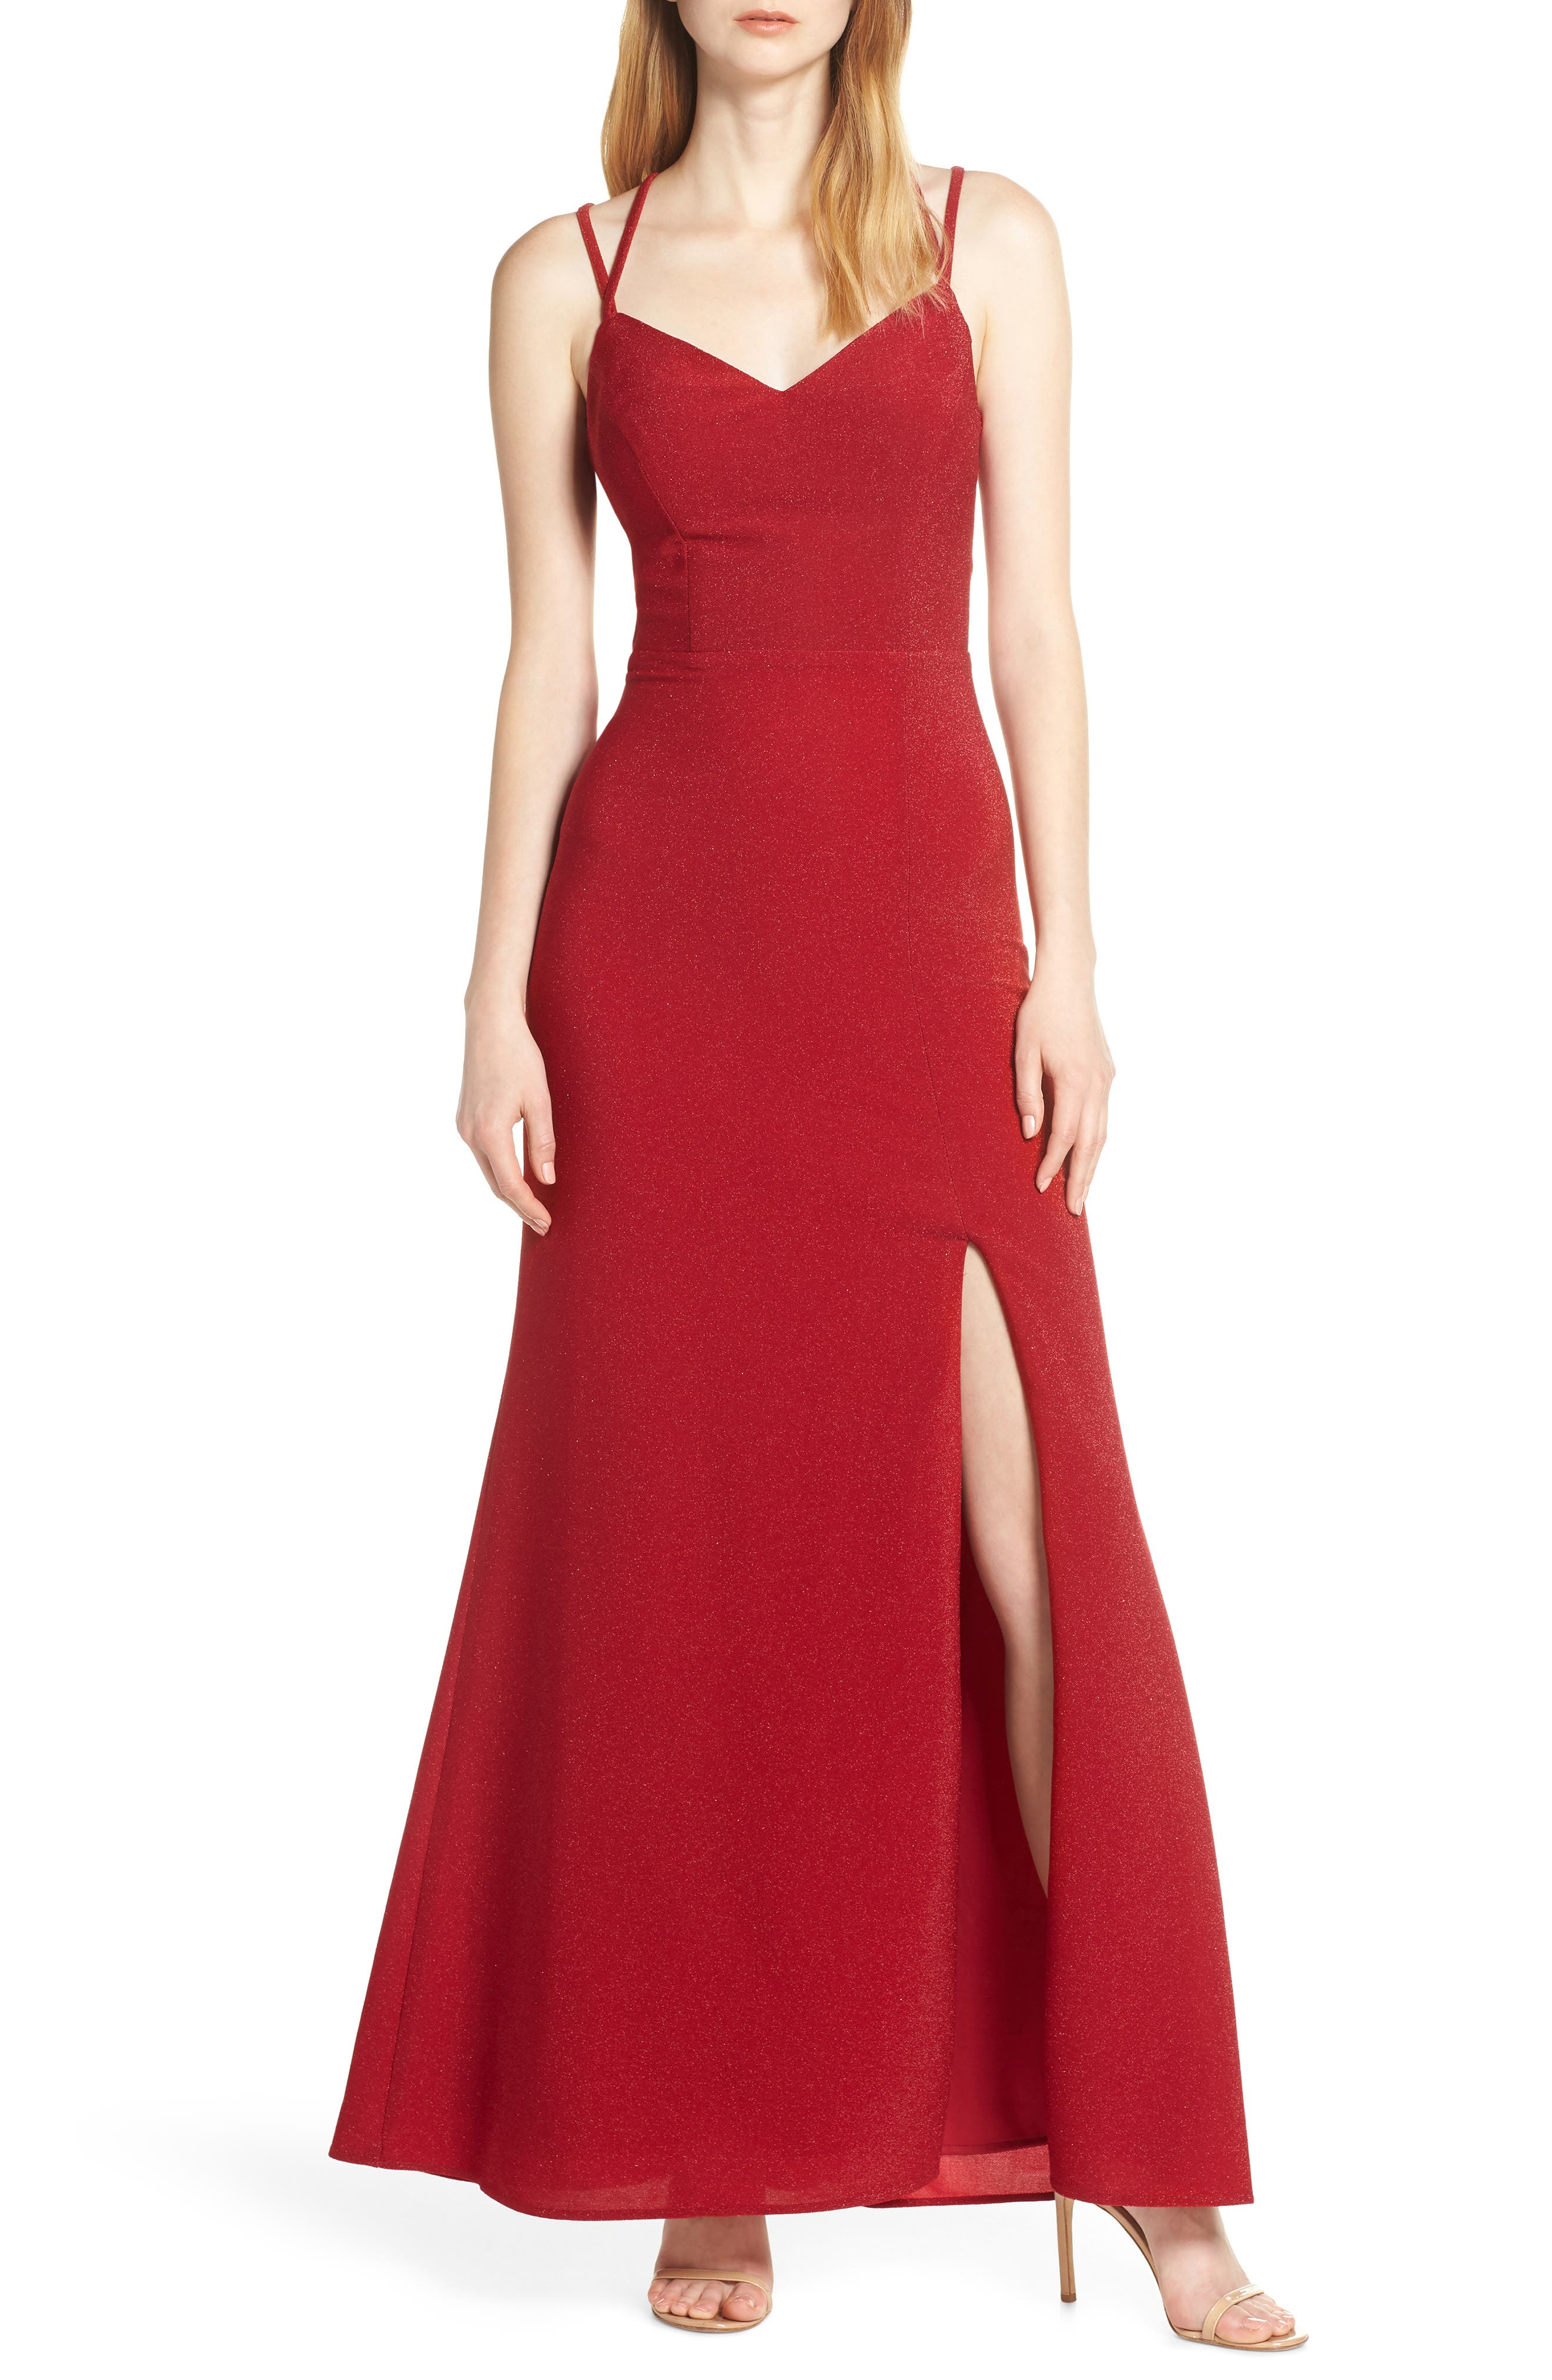 Morgan & Co. Strappy Glitter Knit Evening Dress, Red